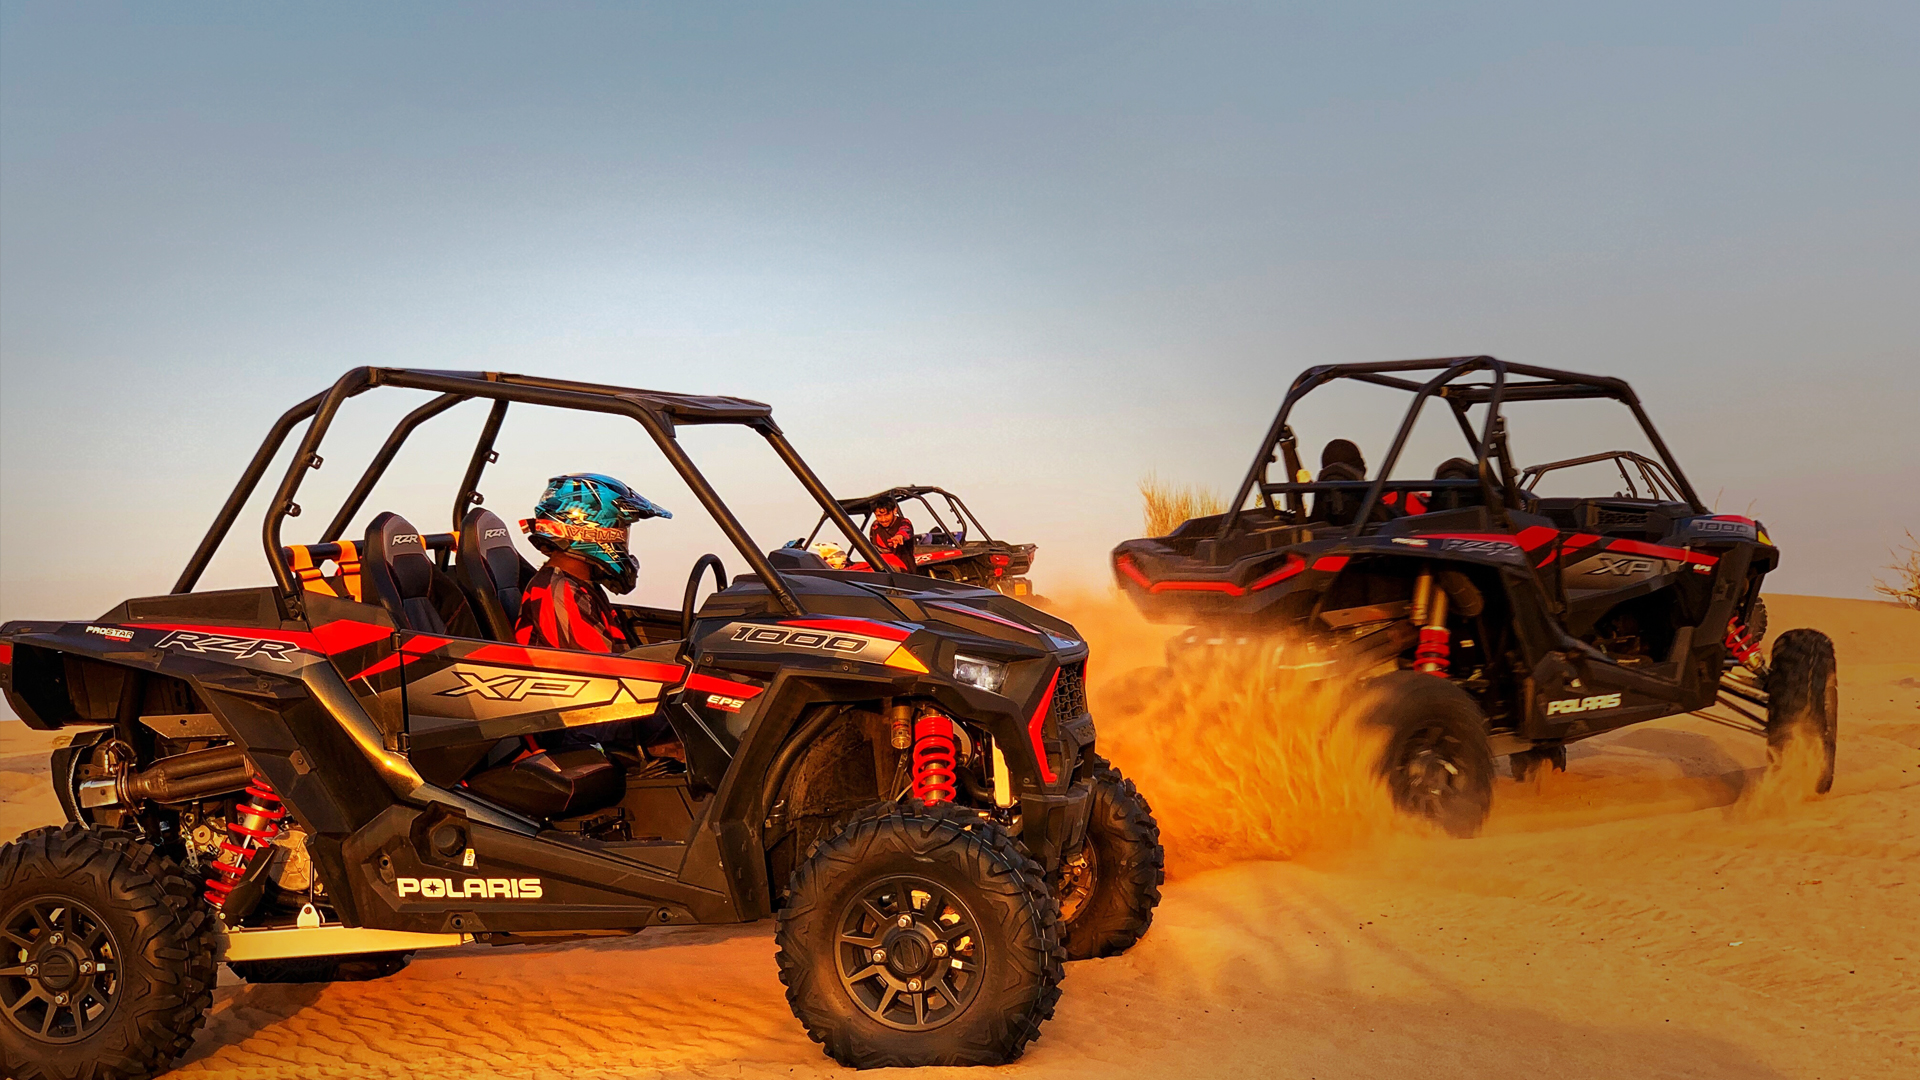 Book A Buggy To Set Yourself Free In Dubai Desert